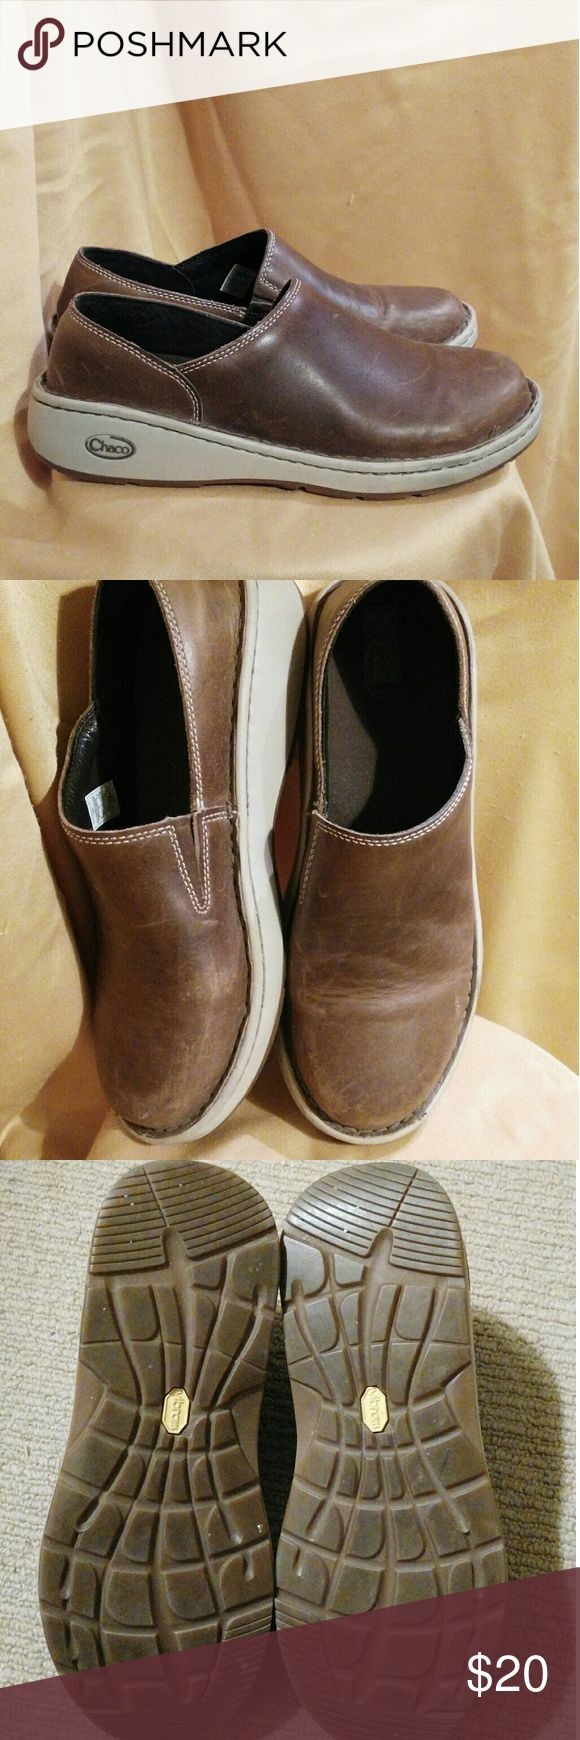 Multi-Tasking Chaco Leather Slip-Ons Sz 9 Beautiful brown leather Chaco flats with great gripping marshmallow soles.  Terrific for bicycling to work and looking good with a mini-skirt and tights or with jeans for walking on slickrock or around the farmer's market. Chaco Shoes Flats & Loafers